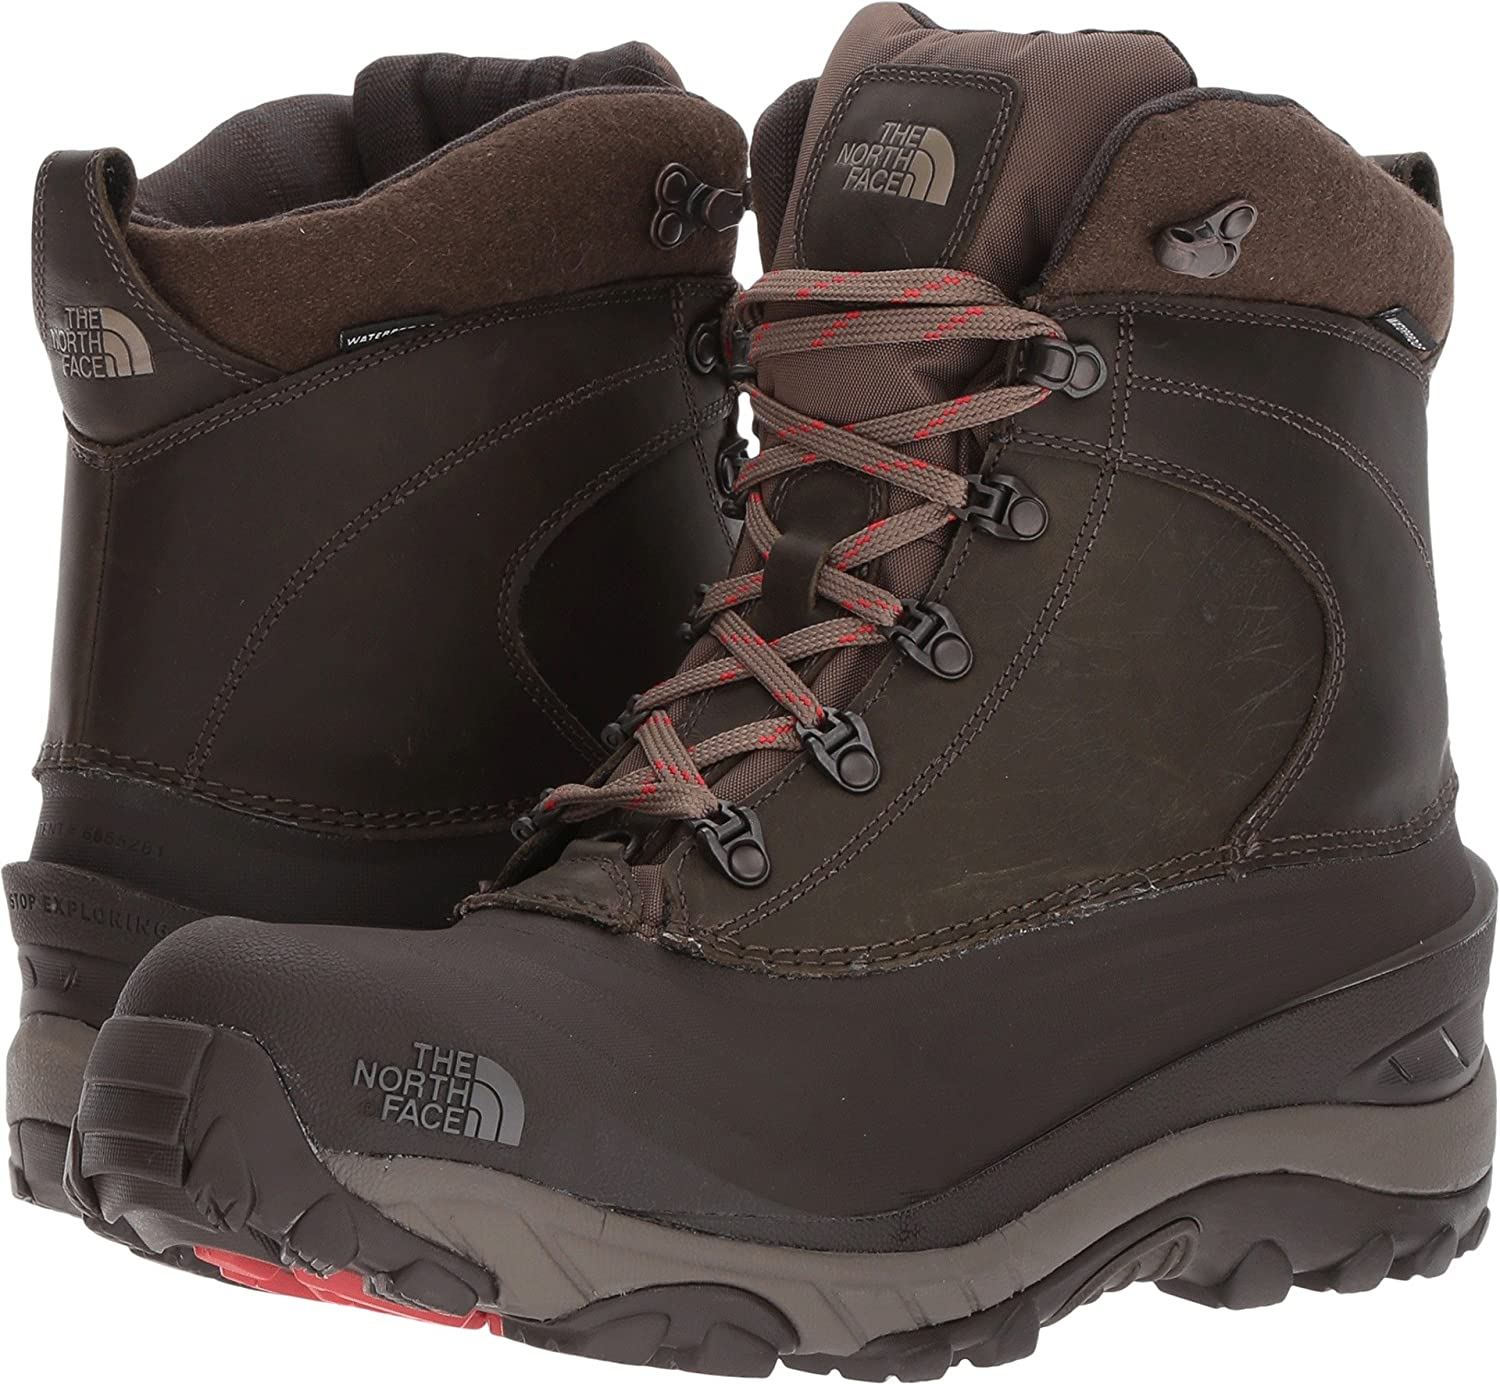 45c48b96a Amazon.com | The North Face Mens Chilkat III Luxe | Snow Boots